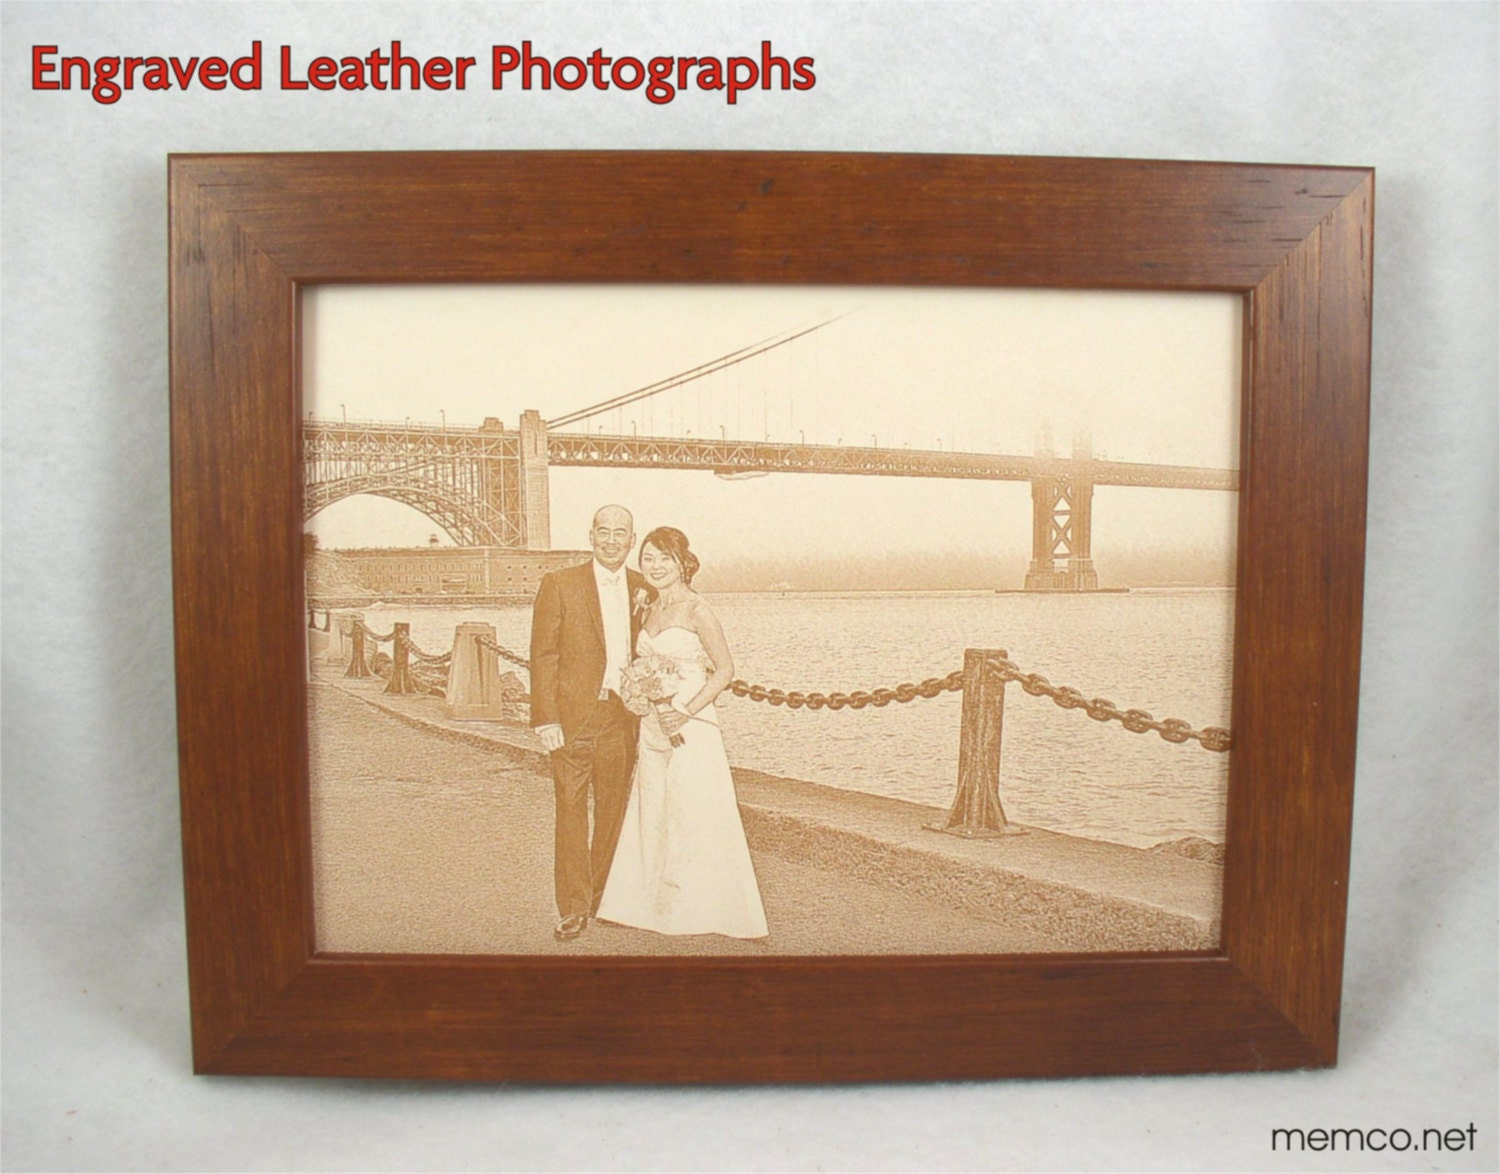 3rd Wedding Anniversary Leather Gifts: Photograph Engraved In REAL LEATHER Leather Anniversary Gift